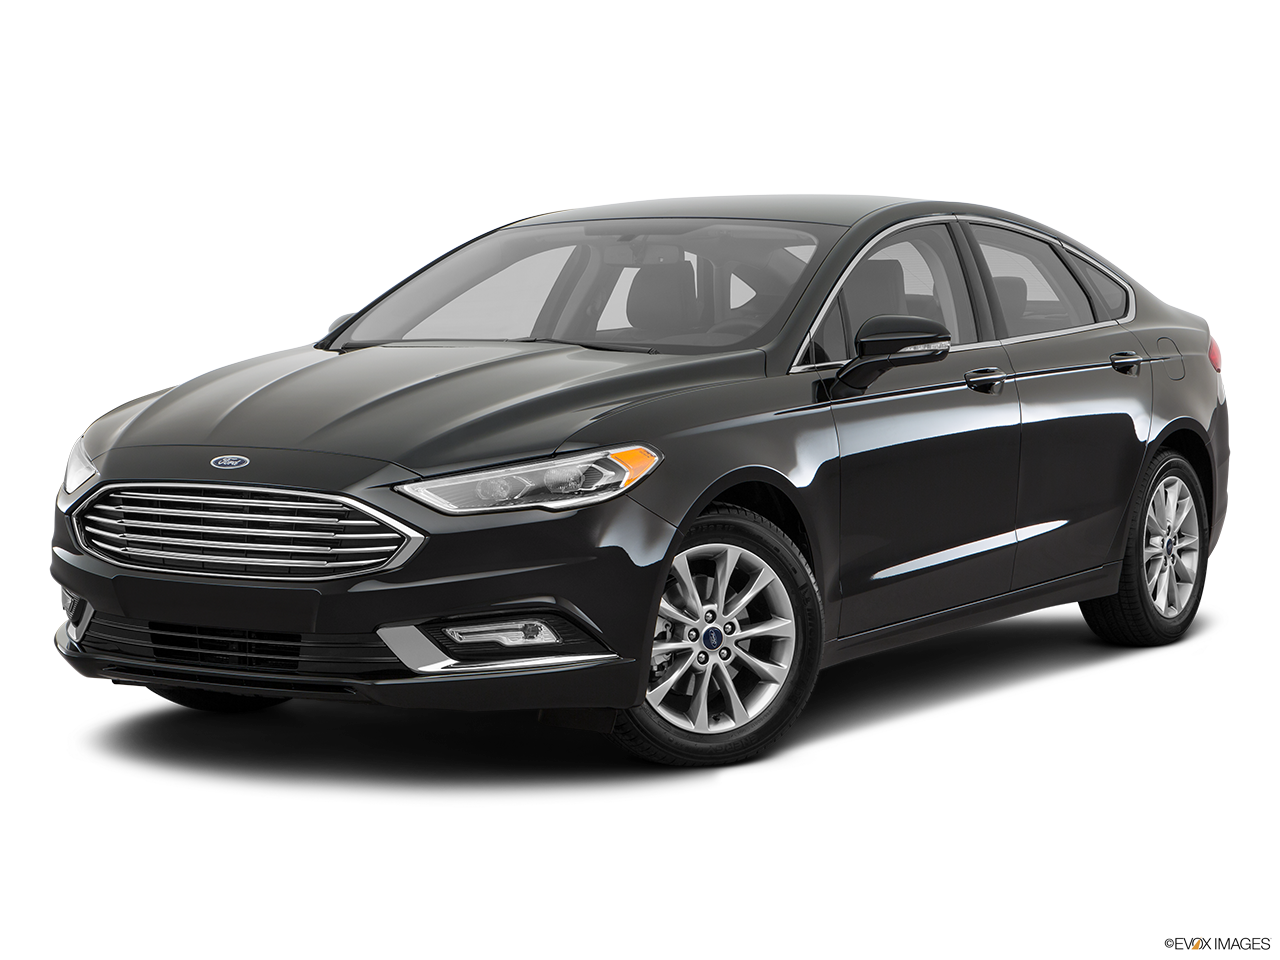 Test Drive A 2017 Ford Fusion at Galpin Ford in Los Angeles